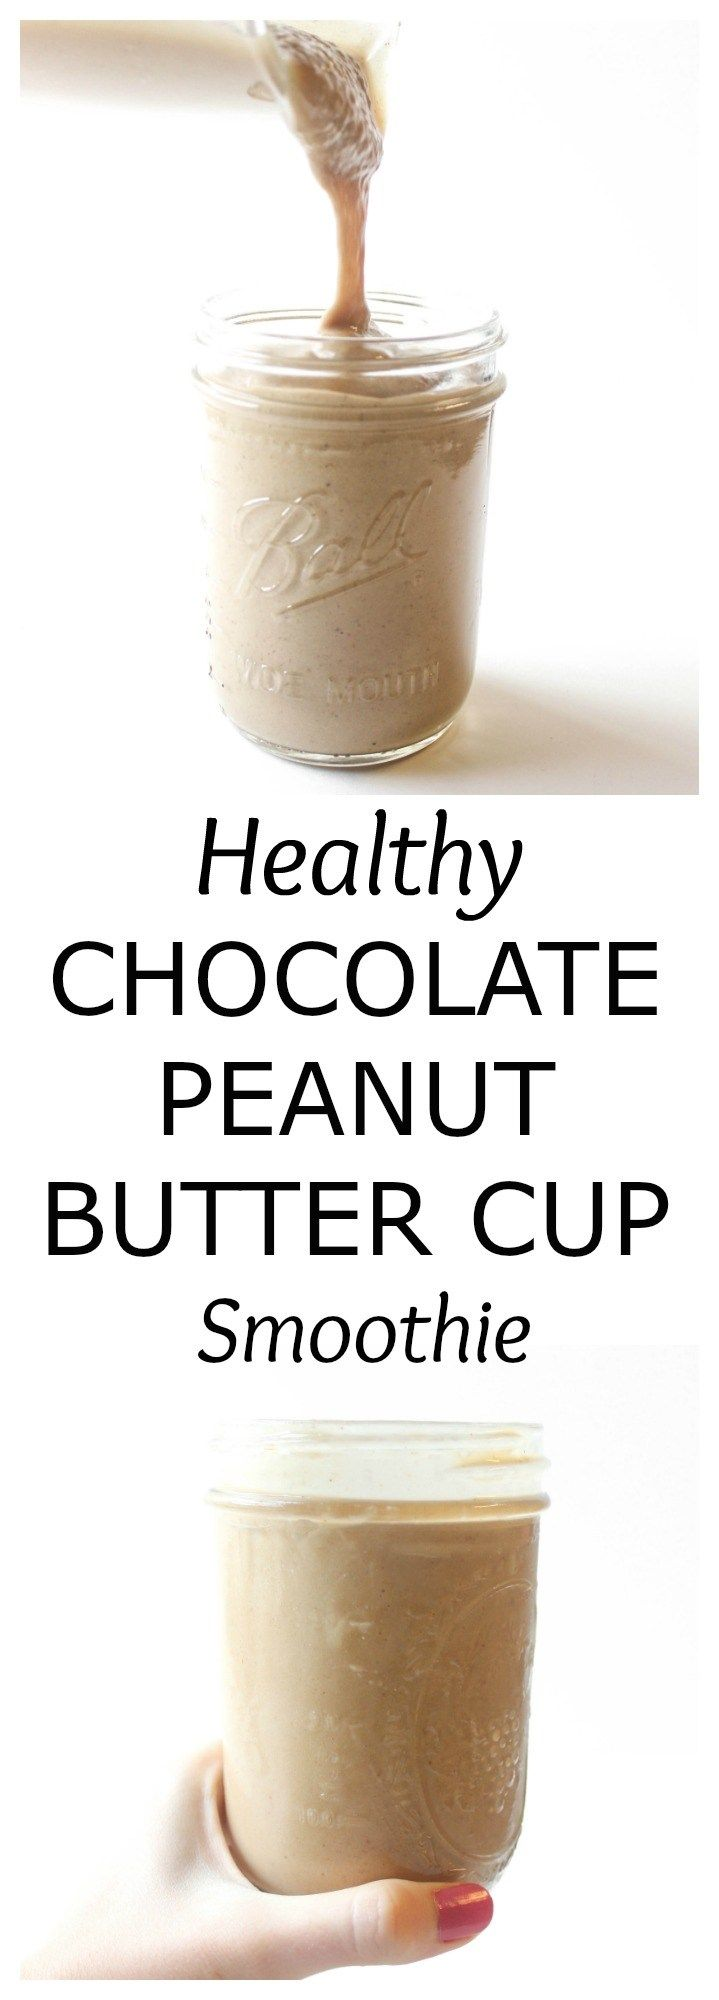 You've got to try this healthy Chocolate Peanut Butter Cup Smoothie!